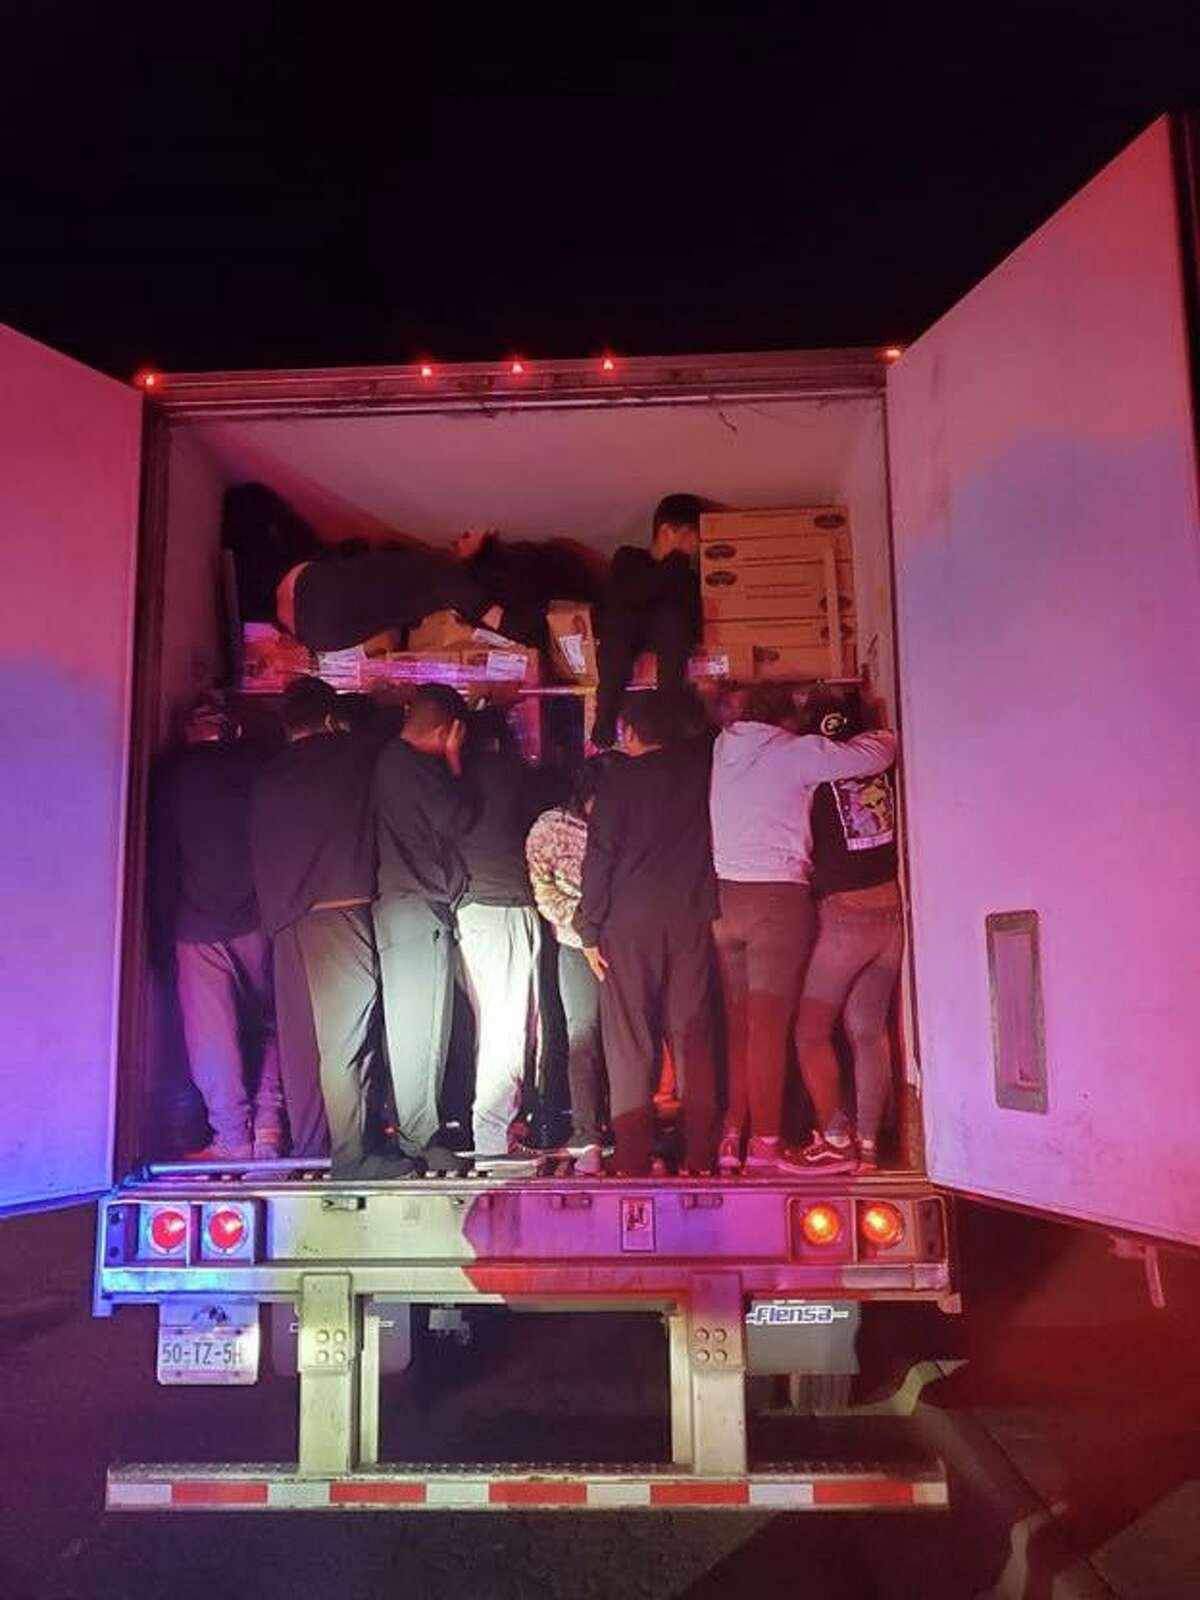 U.S. Border Patrol agents said they have arrested more than 190 migrants in a matter of four days. The migrants were found inside commercial vehicles.